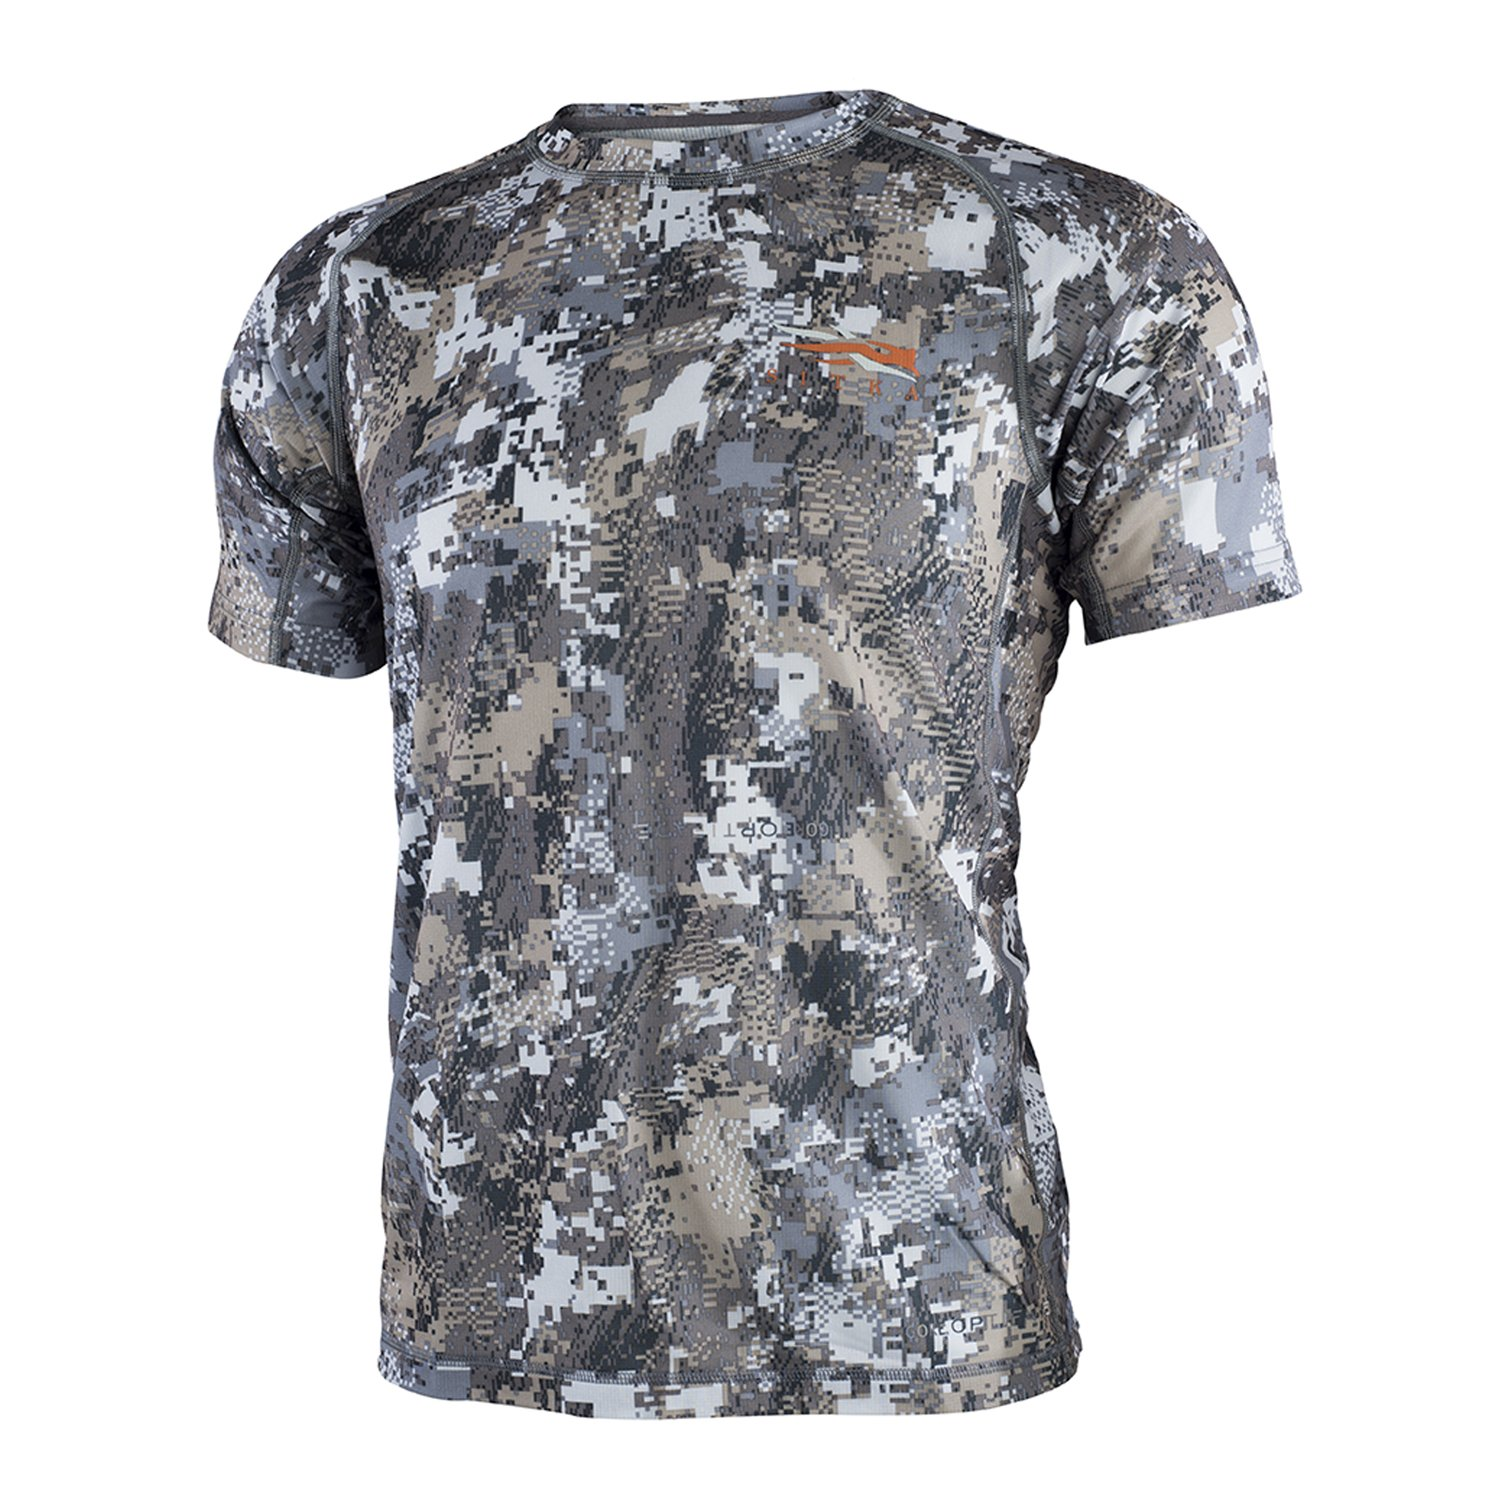 SITKA Gear Core Light Weight Crew - Short Sleeve Optifade Elevated II Small